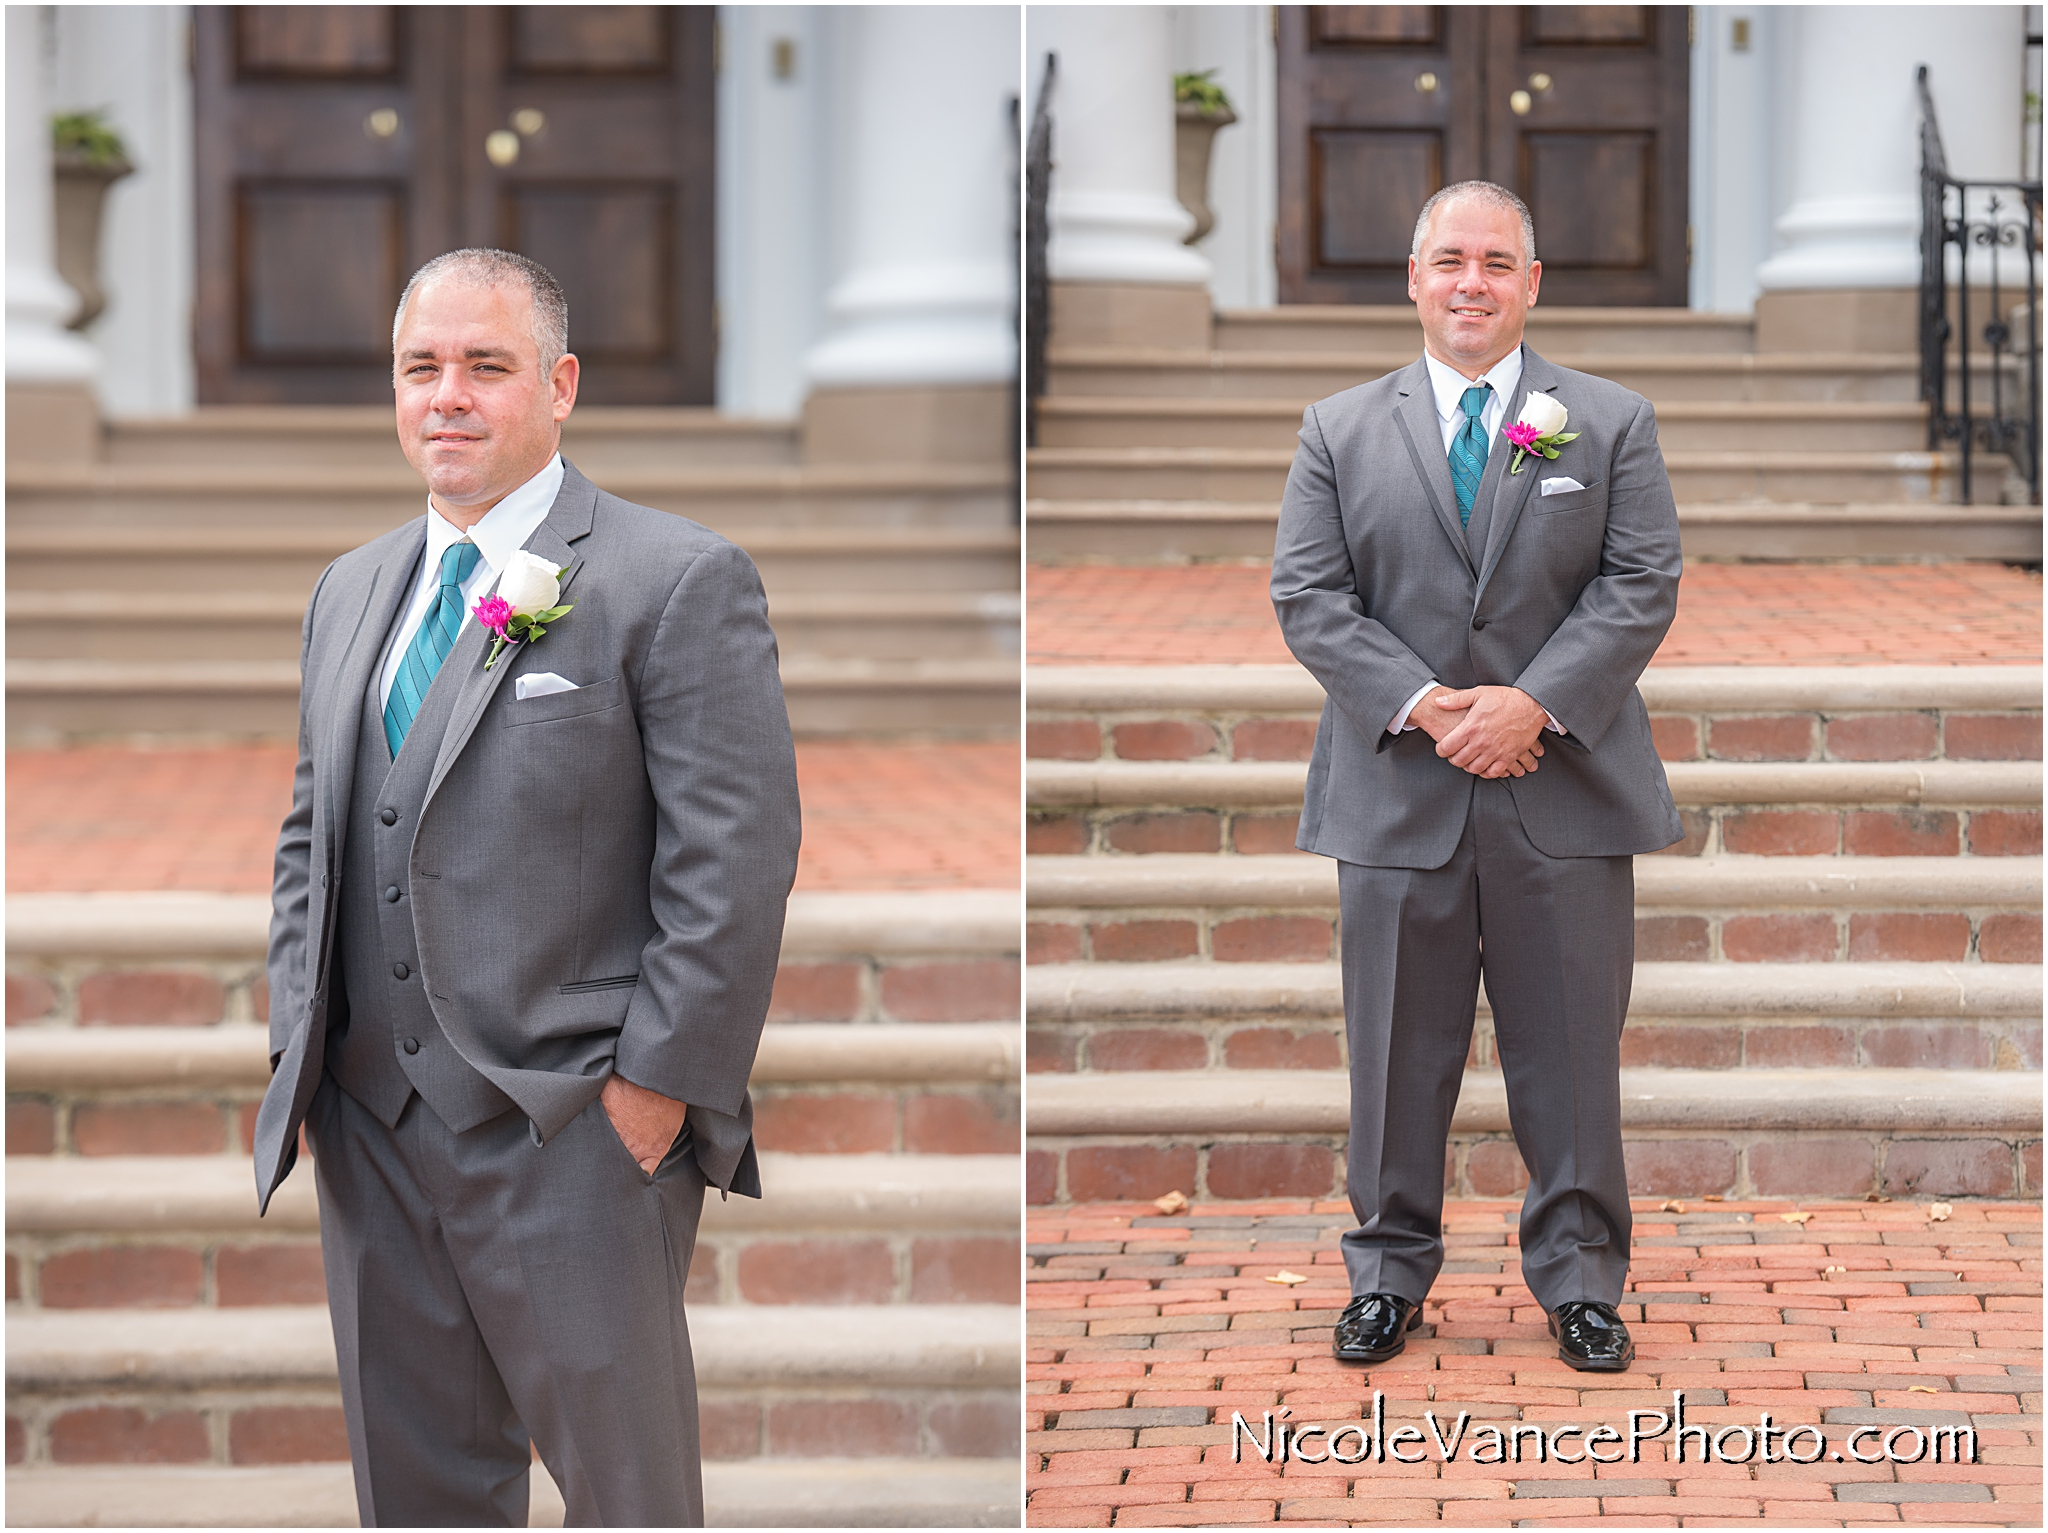 Groom portrait on the steps at Virginia Crossings.